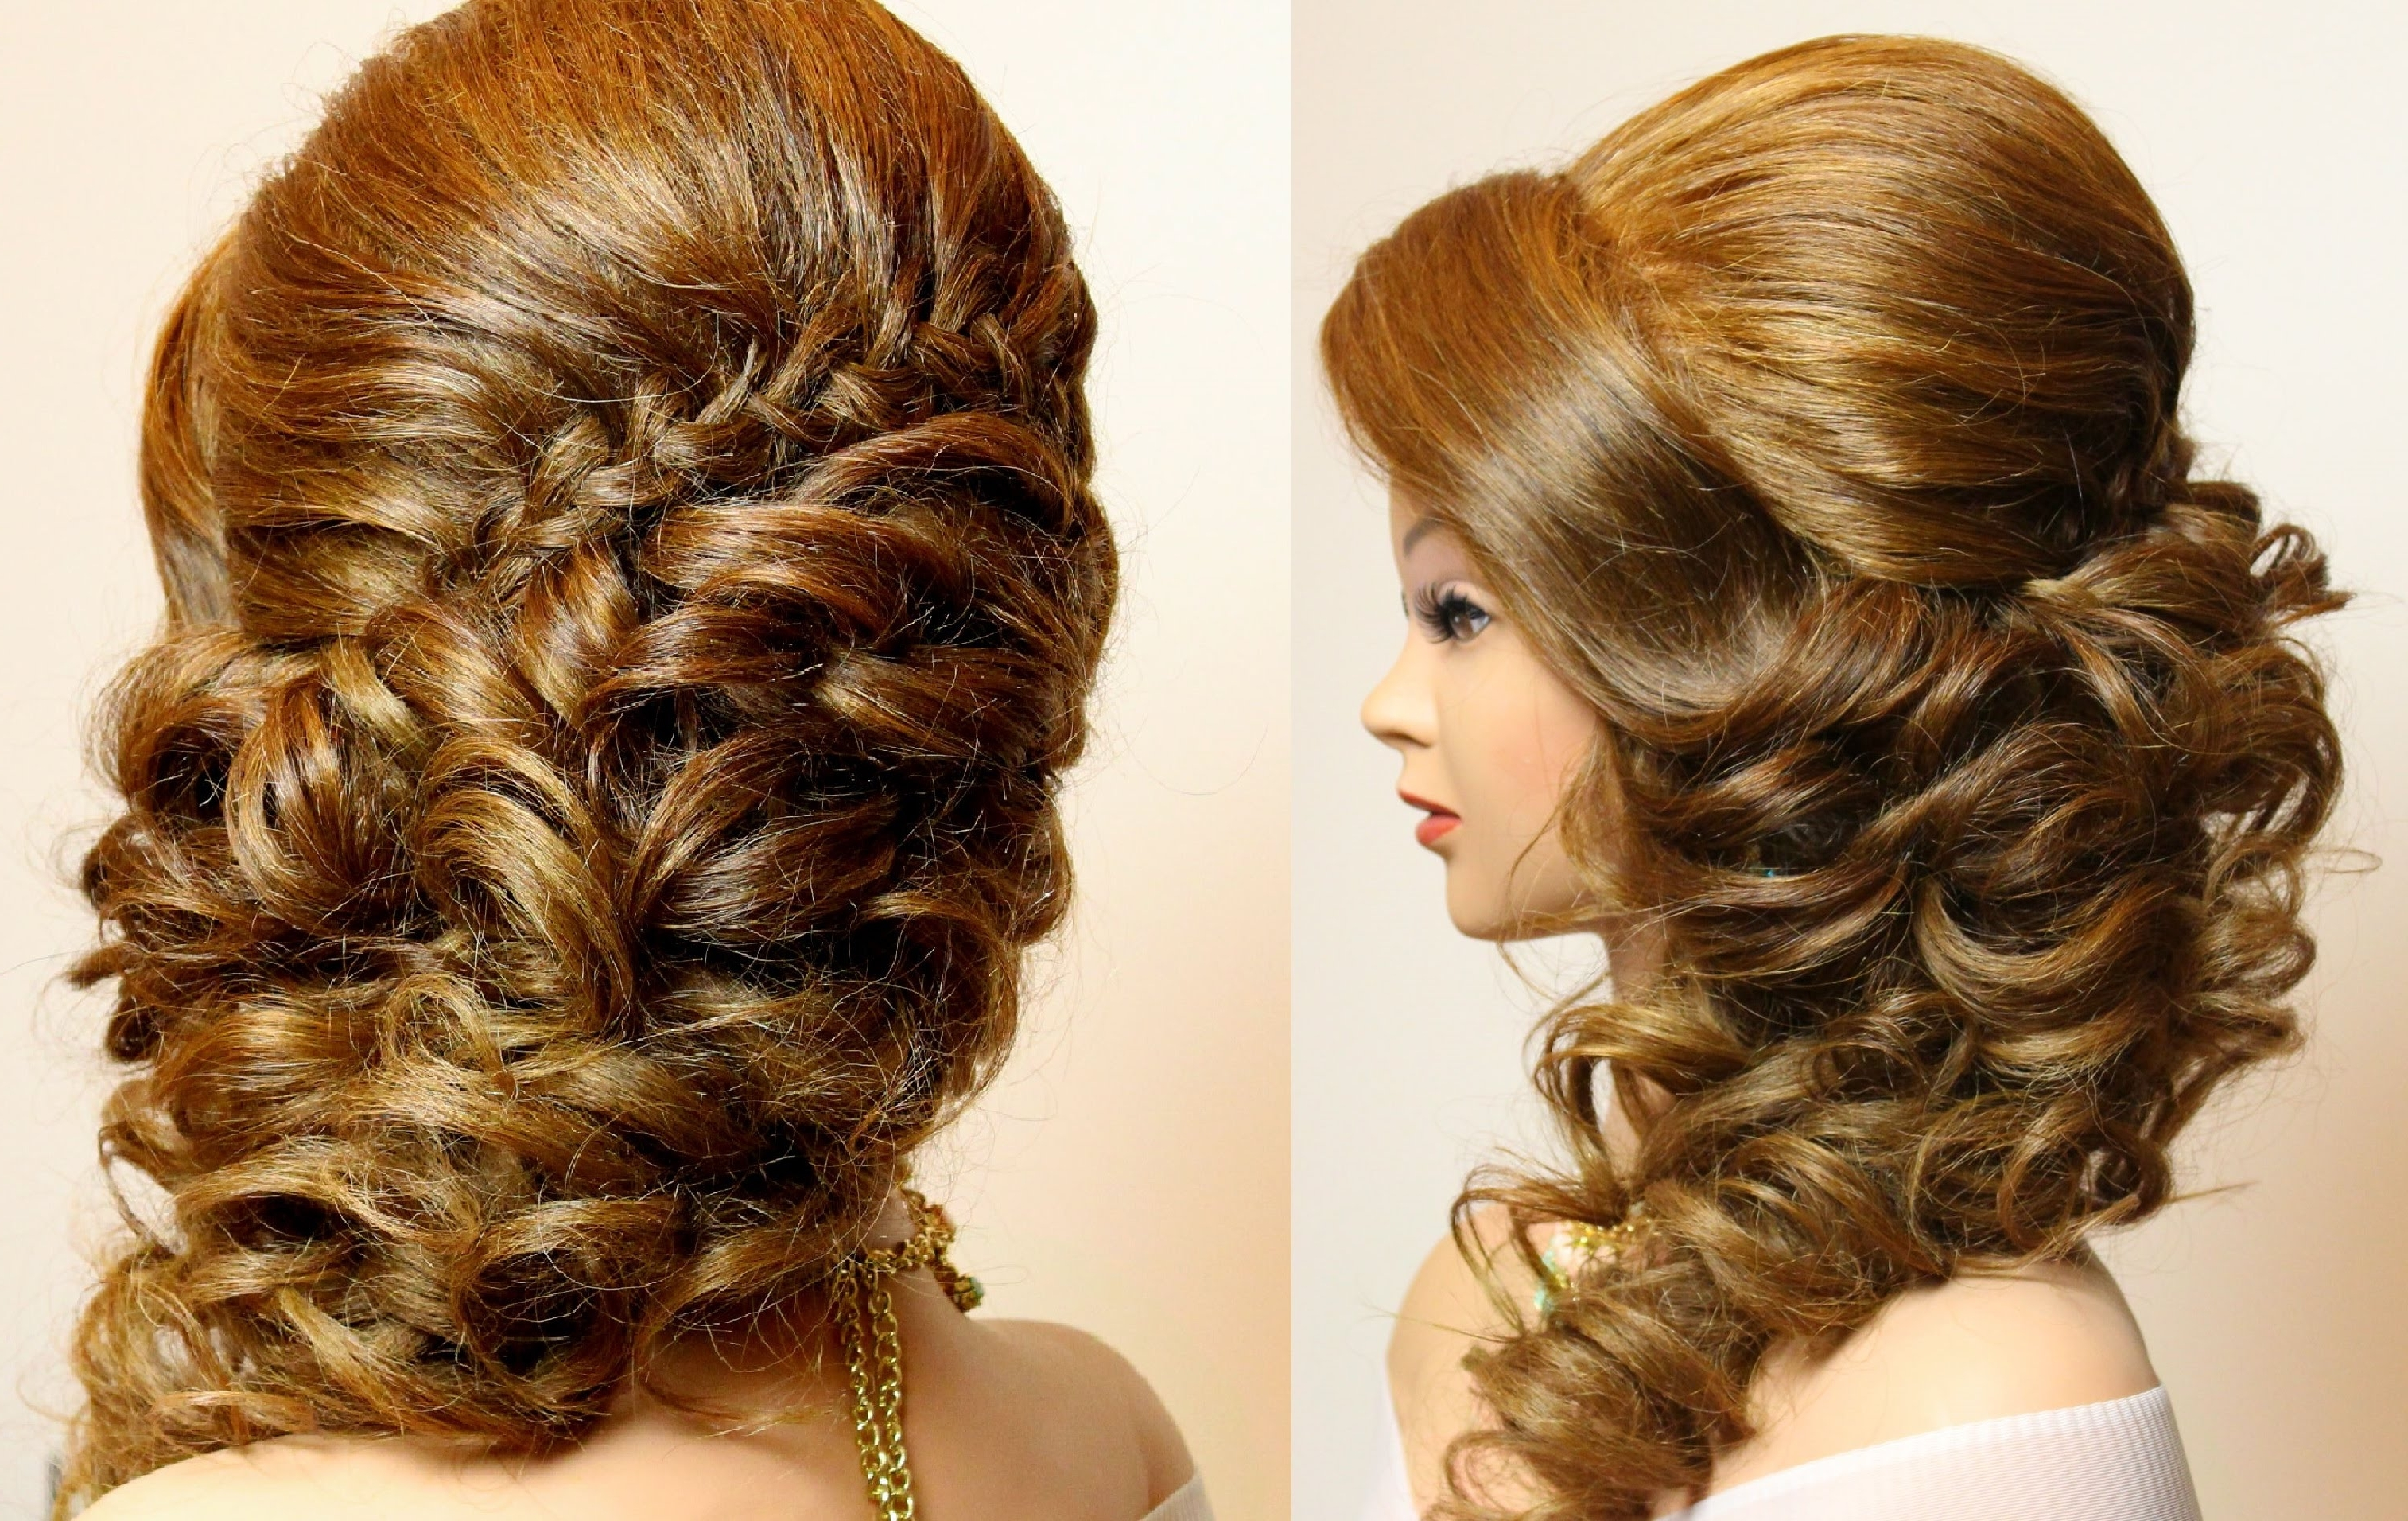 Bridal Hairstyle With Braid And Curls (View 8 of 15)